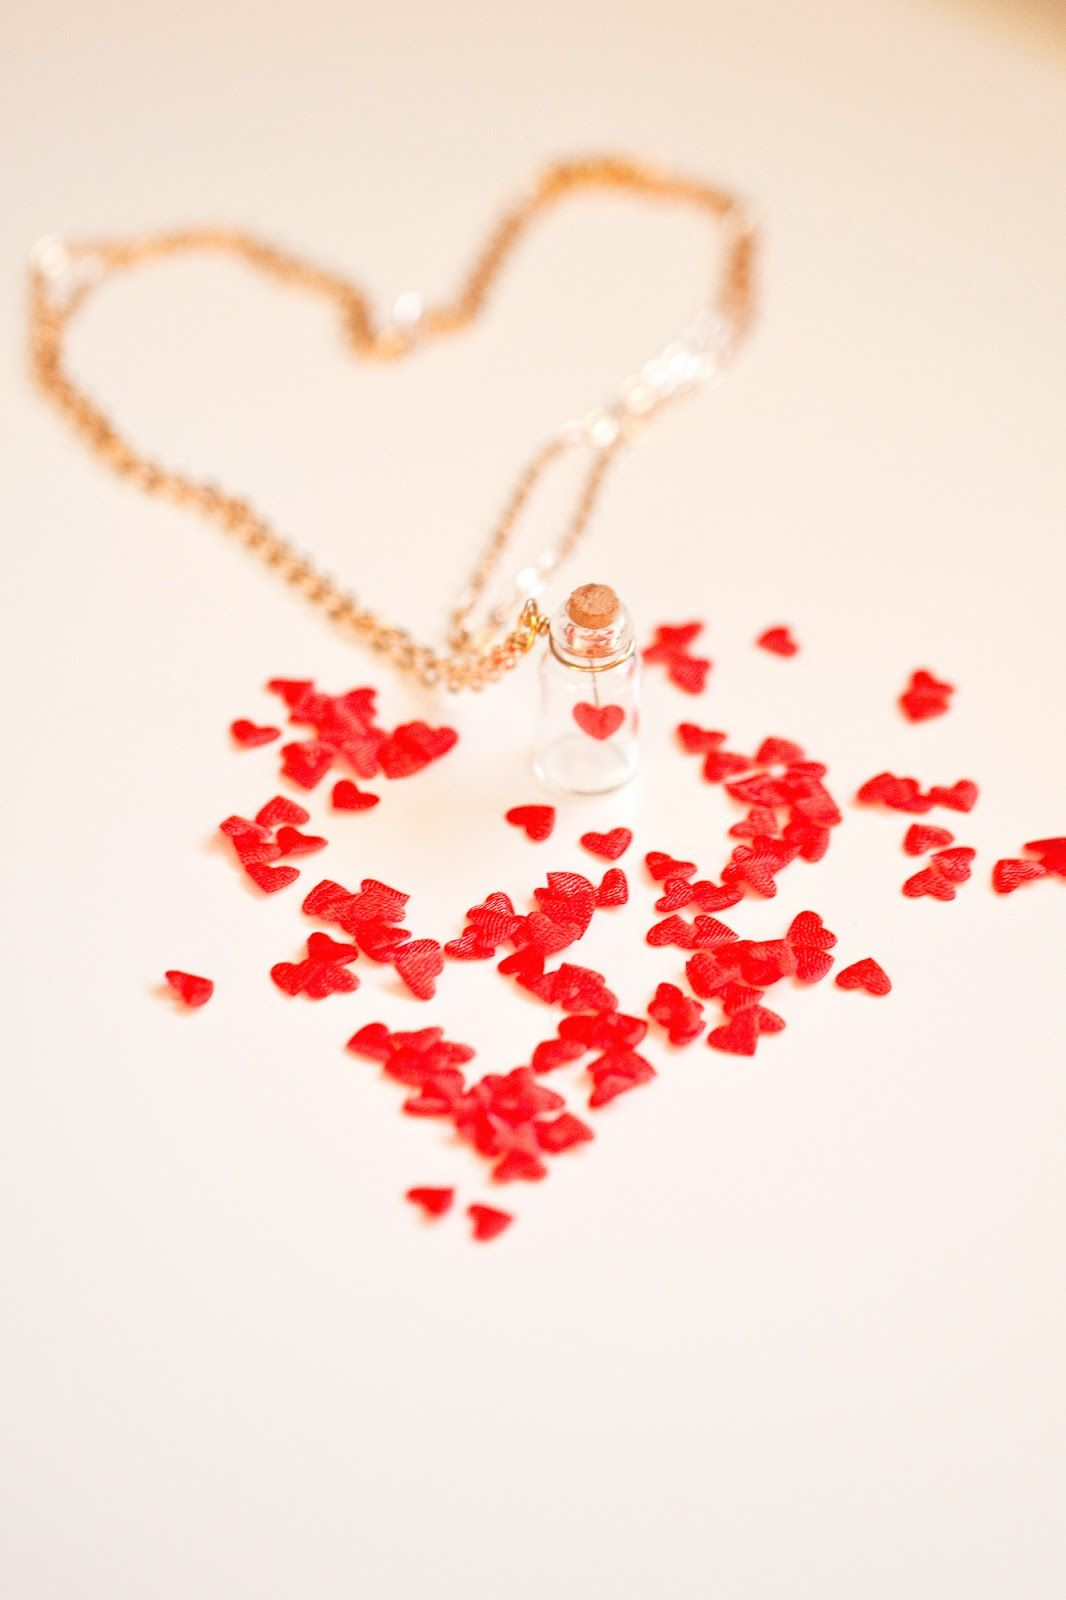 With Valentines less than a week away I thought I would squeeze in a little jewellery DIY you can make before next week. This really swee...